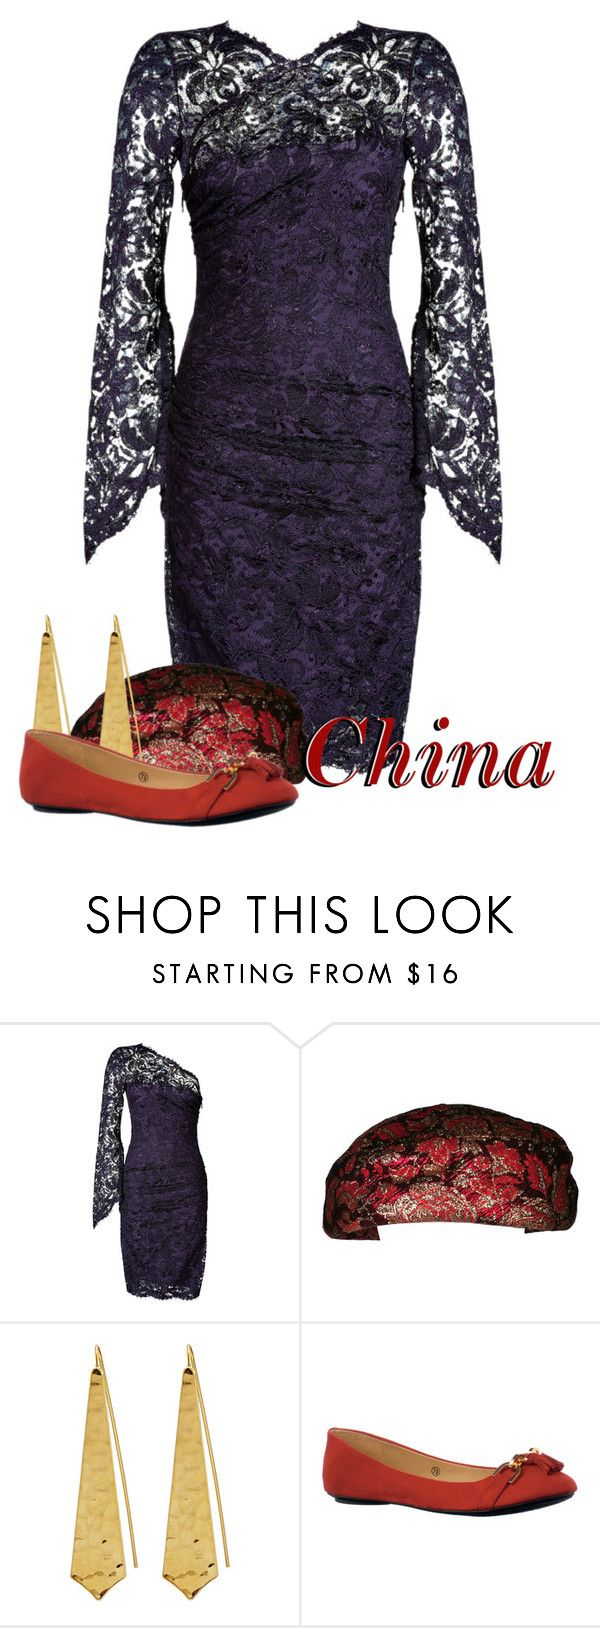 """""""China Halloween"""" by bluetidegirl ❤ liked on Polyvore featuring Emilio Pucci and Panacea"""